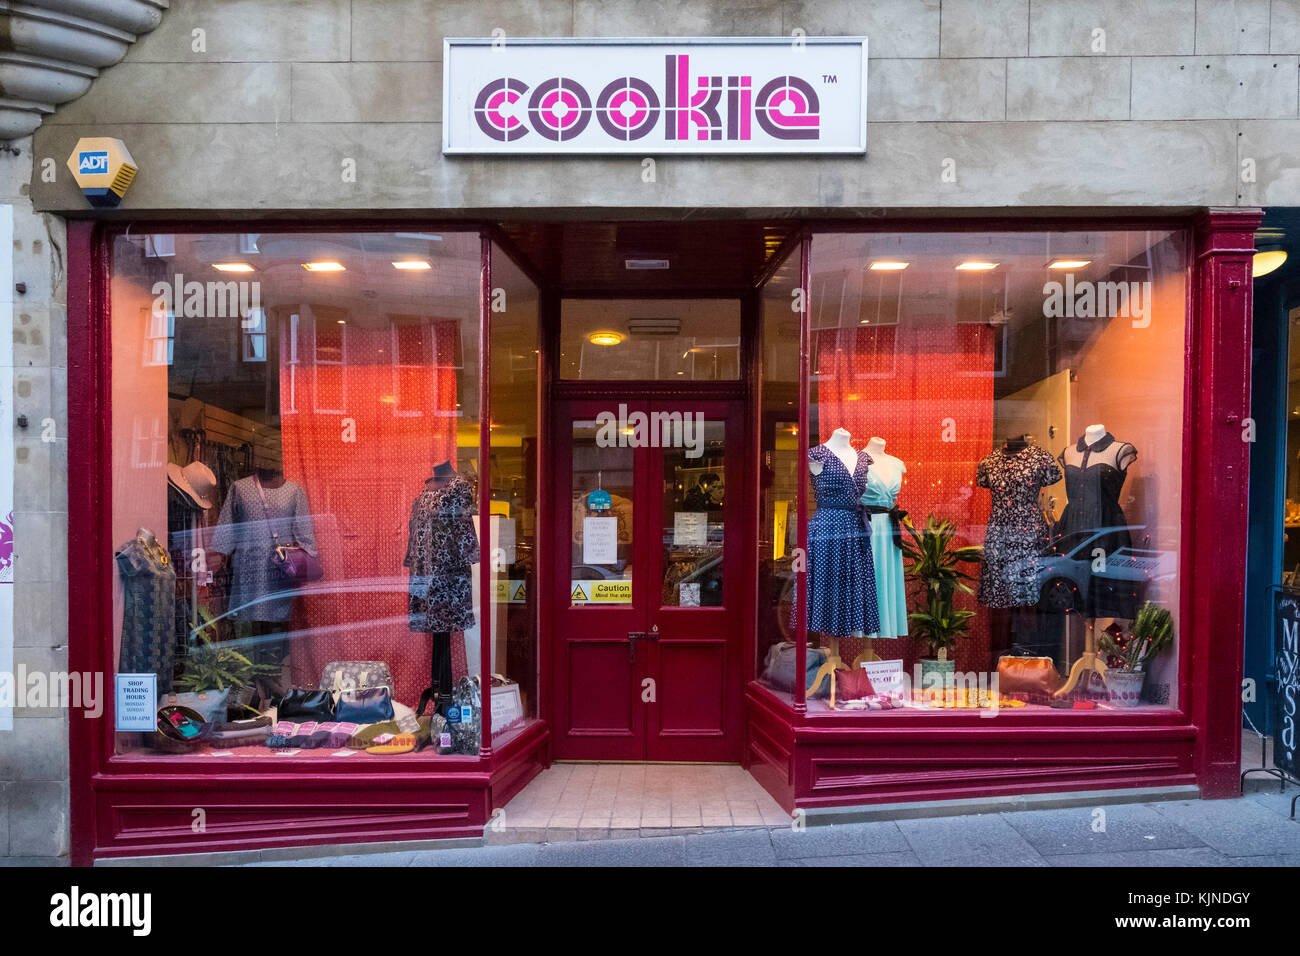 Cookies clothes store